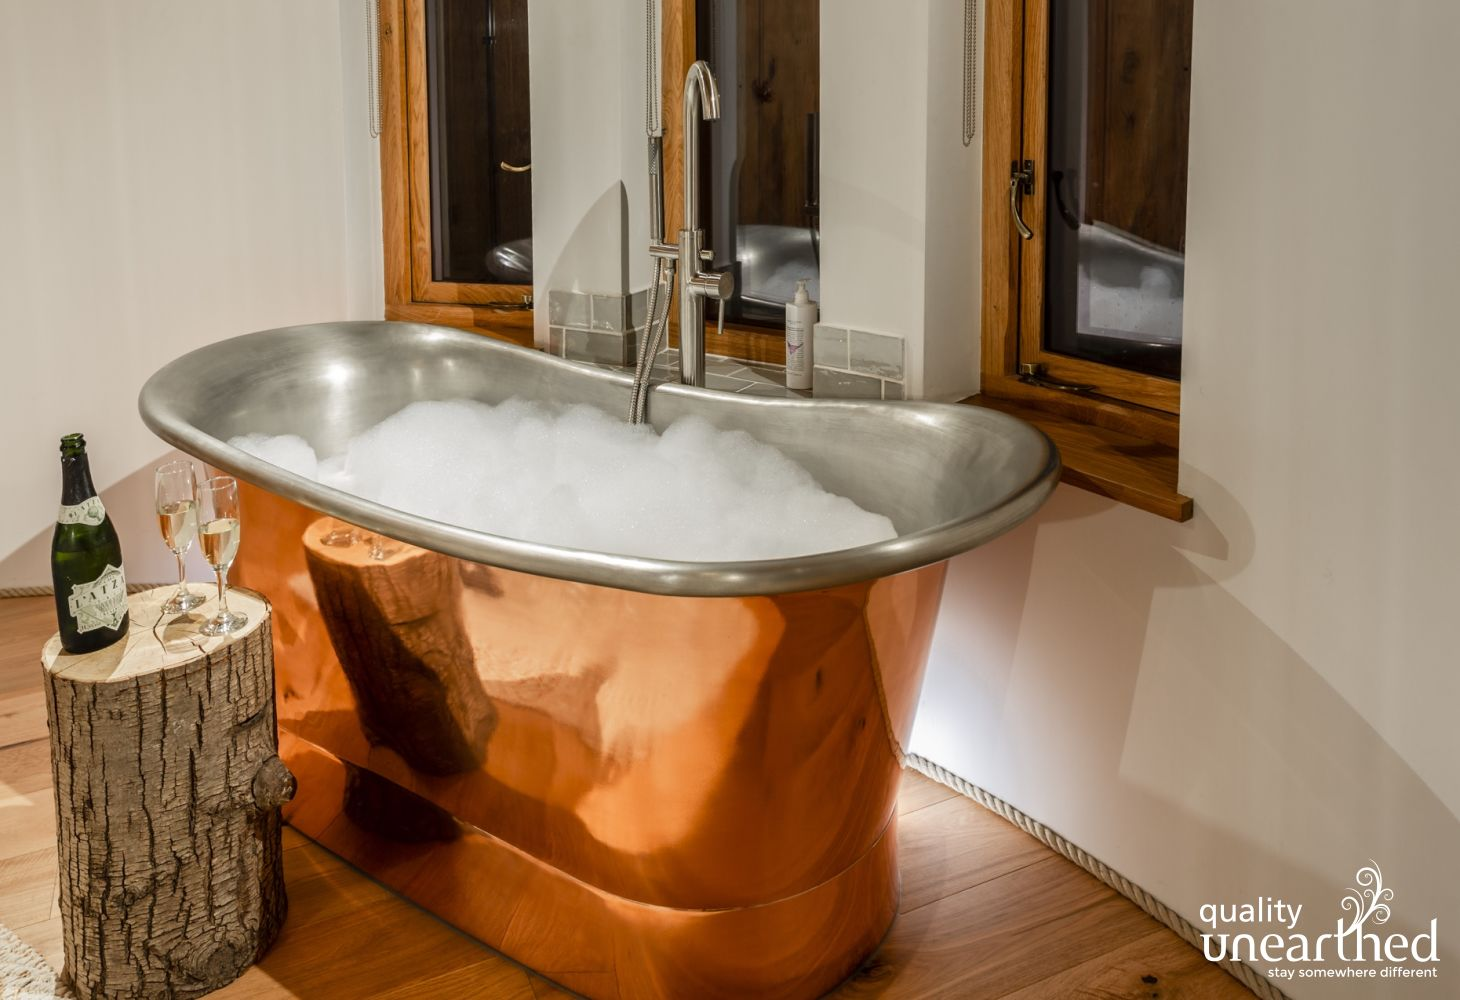 Luxury copper bath full of bubbles and champagne in the master bedroom. Dark night sky outside the treehouse